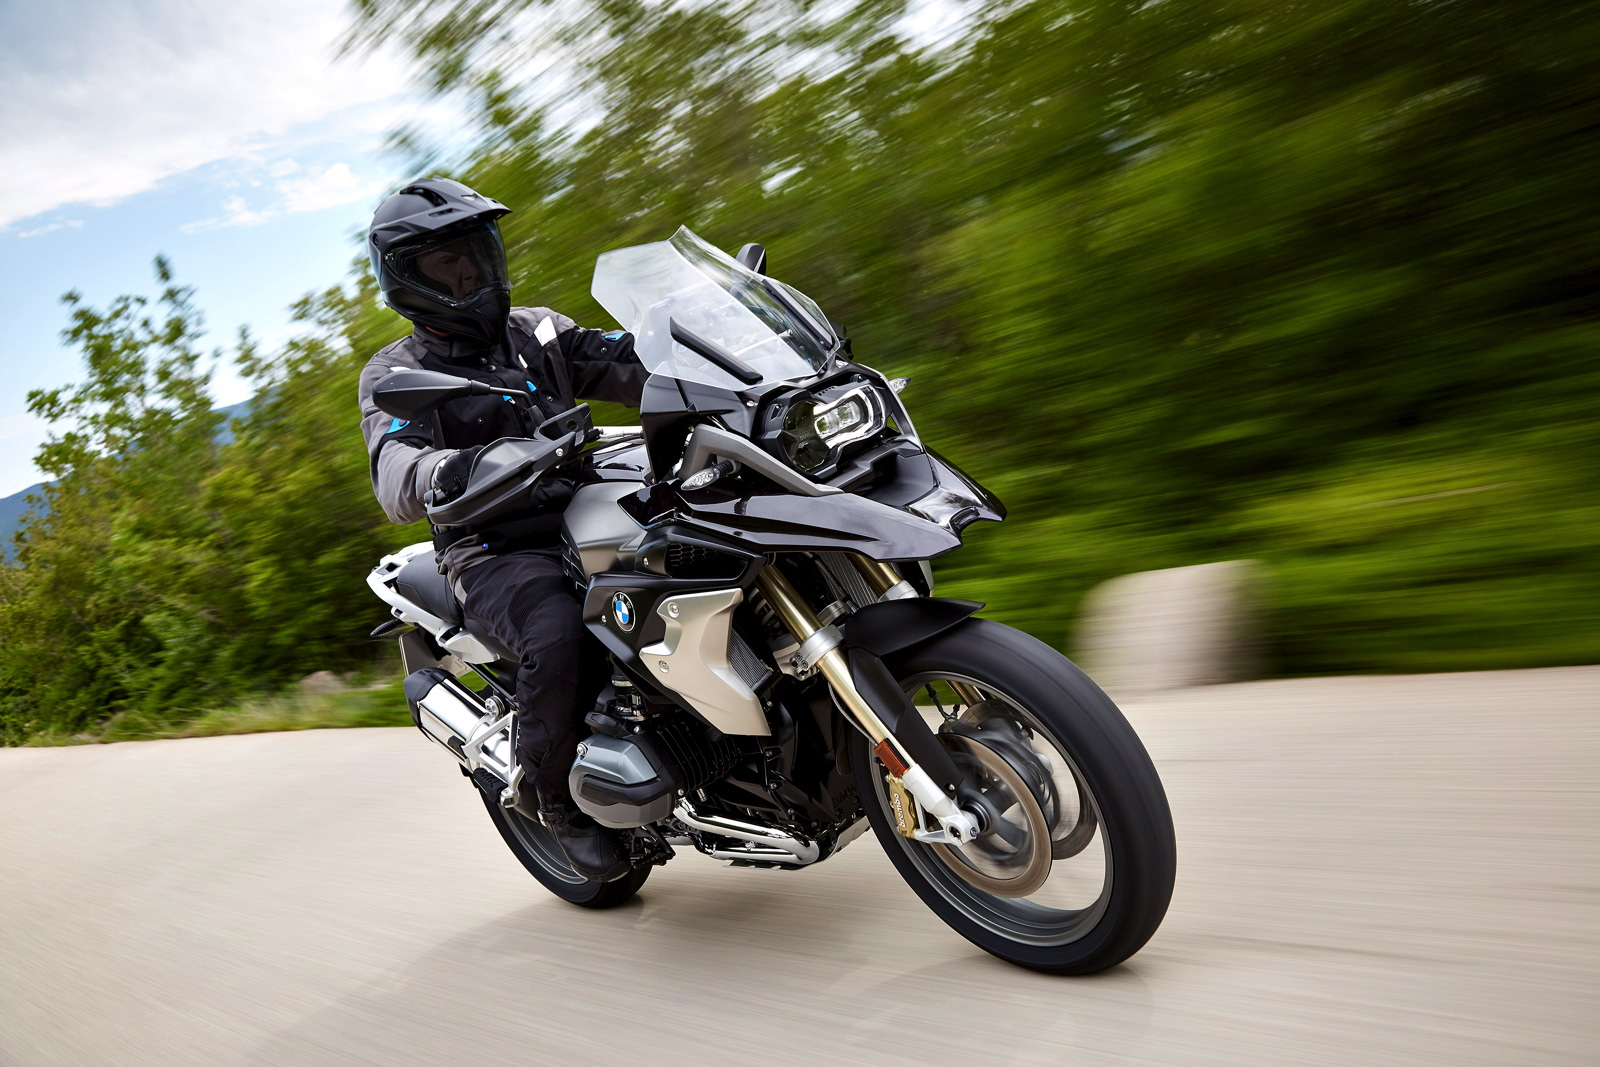 New Bmw R 1200 Gs Ready To Explore The Most Remote Corners